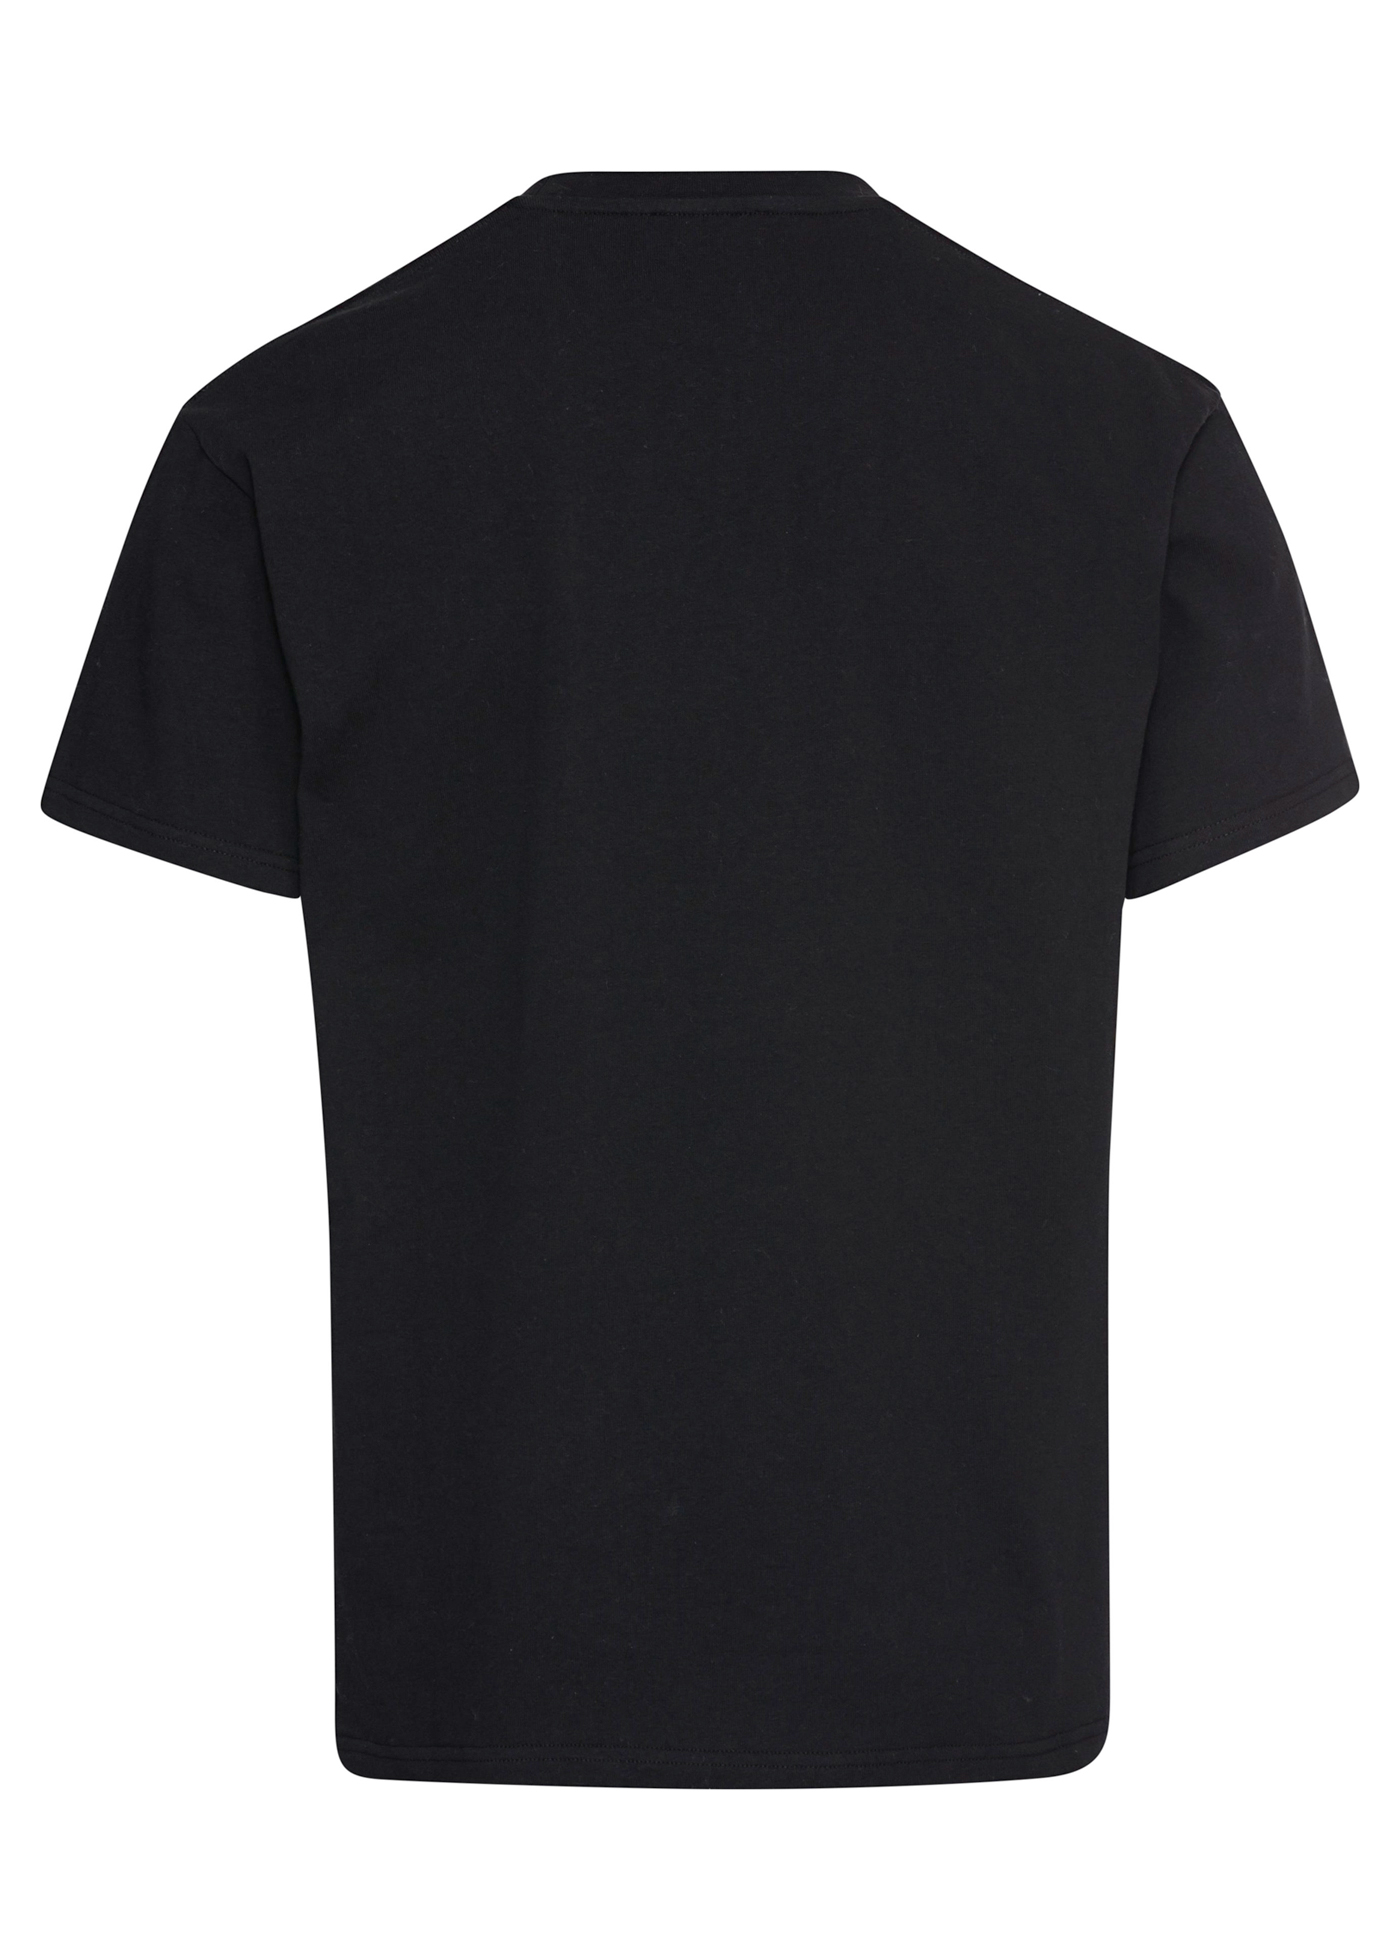 ANCHOR PATCH T-SHIRT image number 1